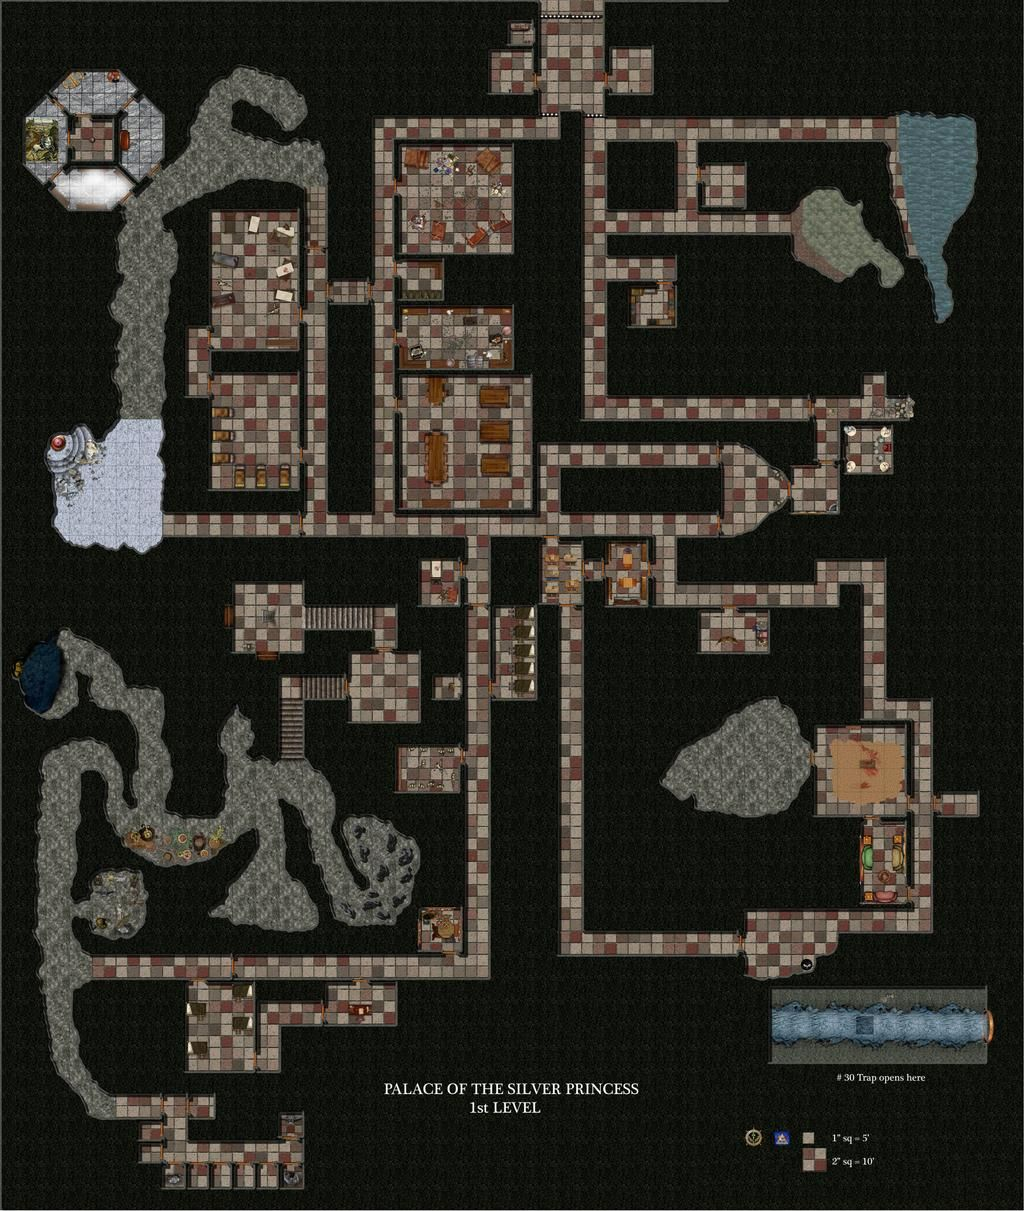 Palace Of The Silver Princess Level 1 By Bogie Dj On Deviantart Kelly S Heroes Dungeon Maps Princess